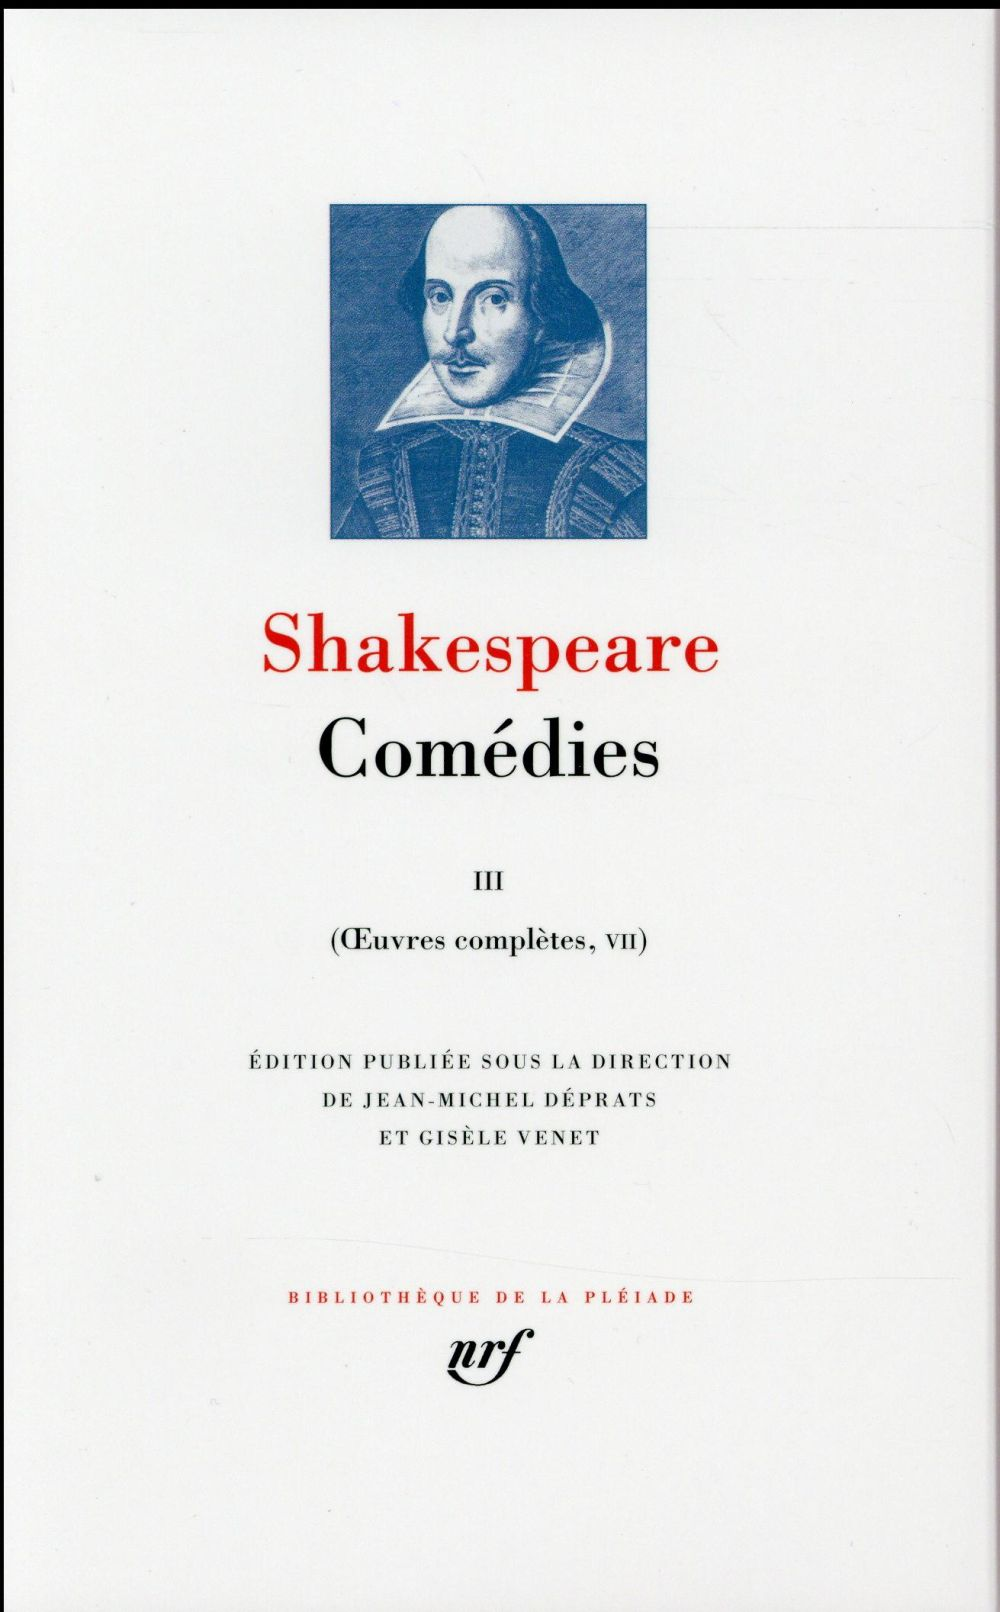 OEUVRES COMPLETES, V-VII : COMEDIES (TOME 3)